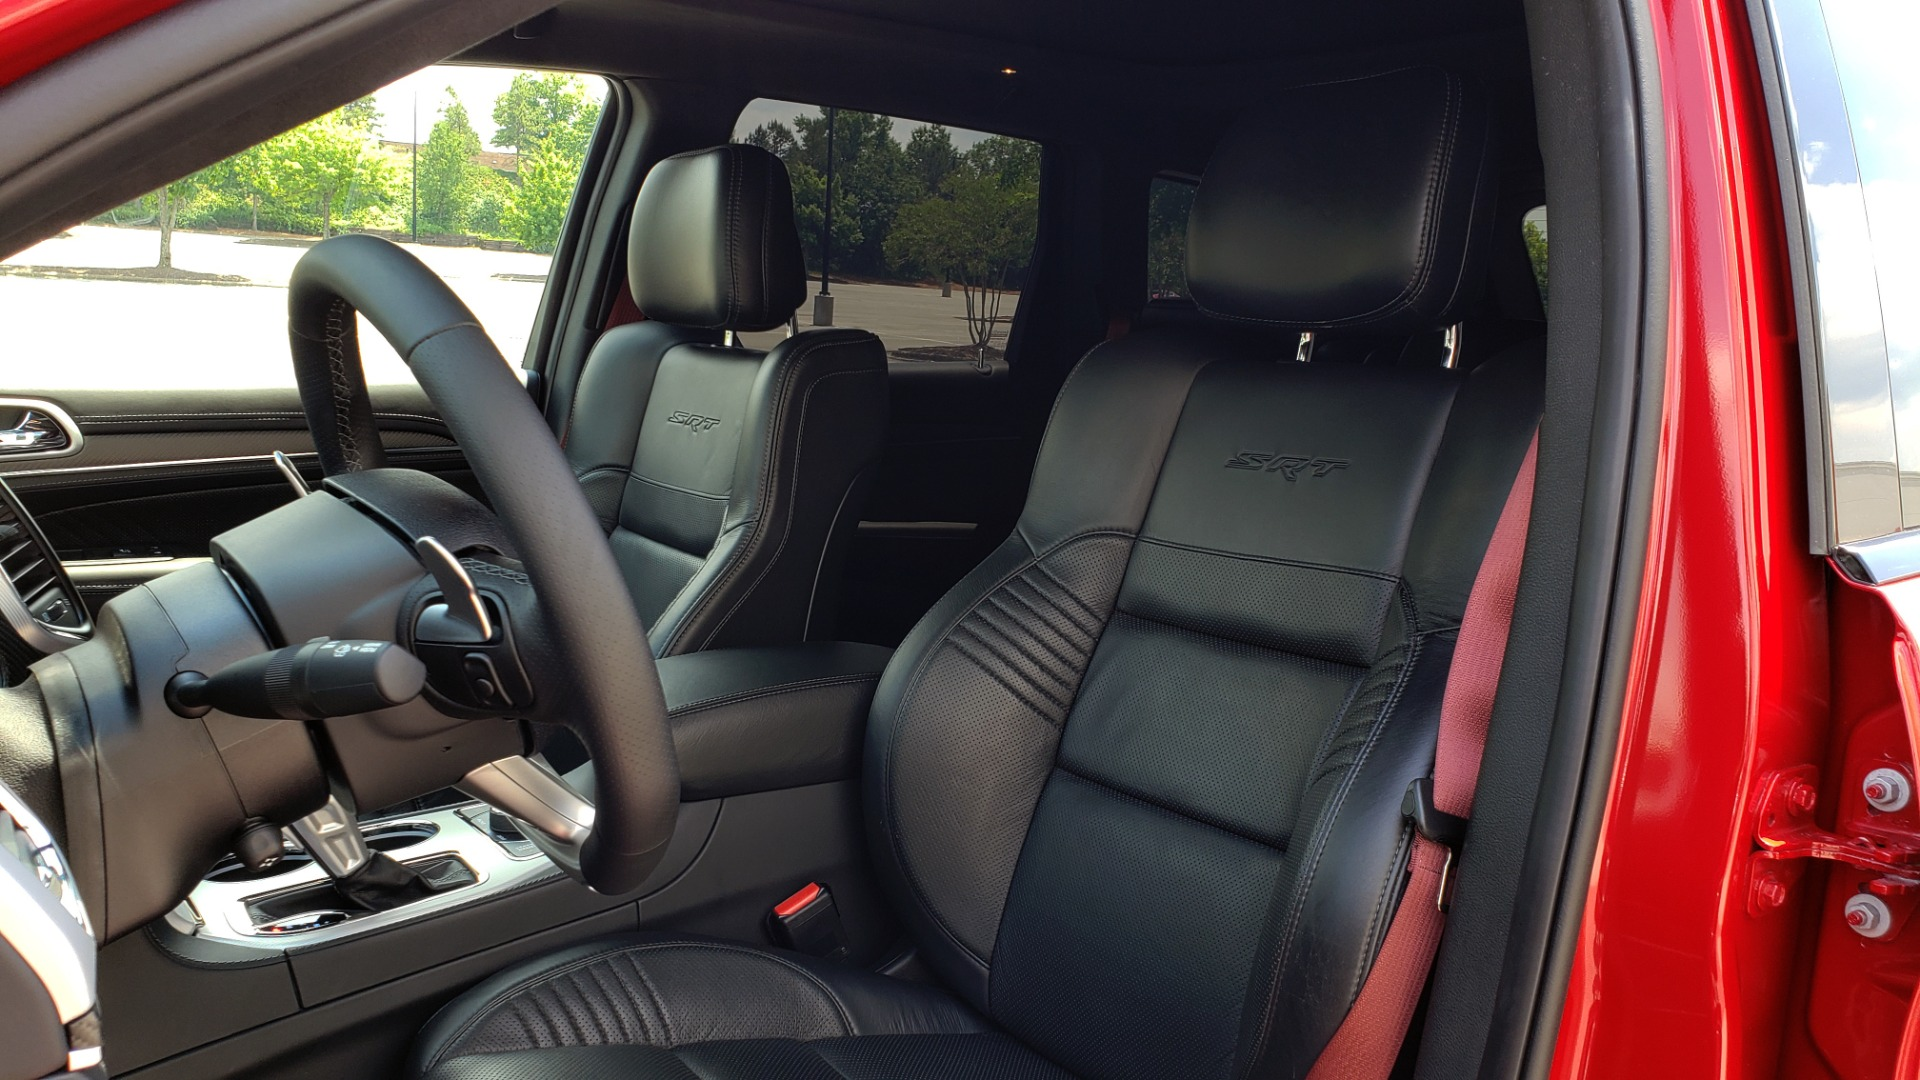 Used 2018 Jeep GRAND CHEROKEE SRT 4X4 / 6.4L HEMI (475HP) / NAV / SUNROOF / H/K SND / REARVIEW for sale Sold at Formula Imports in Charlotte NC 28227 44